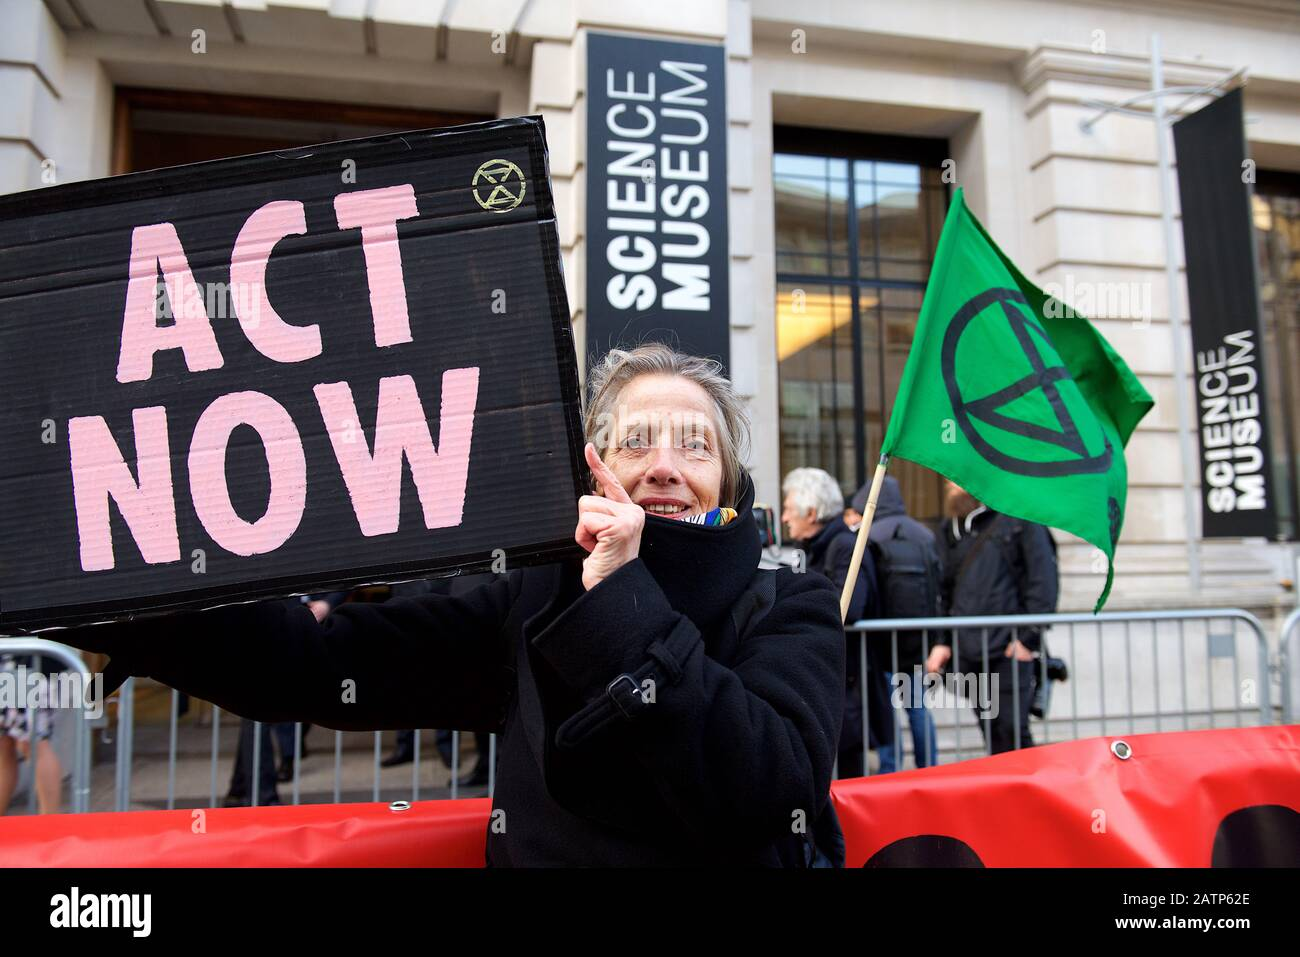 London, UK. 4th Feb 2020. Extinction Rebellion Protests continue in London, this was at the launch event for upcoming climate crisis talks, COP26, in the UK in November 2020. British Prime Minister Boris Johnson gave a speech which was much criticised for being an inadequate response to the scale of the crisis and showing a lack of urgency with his carbon neutral by 2050 date, when the vast majority of climate scientists insist we need to act far sooner. Credit: Gareth Morris/Alamy Live News Stock Photo